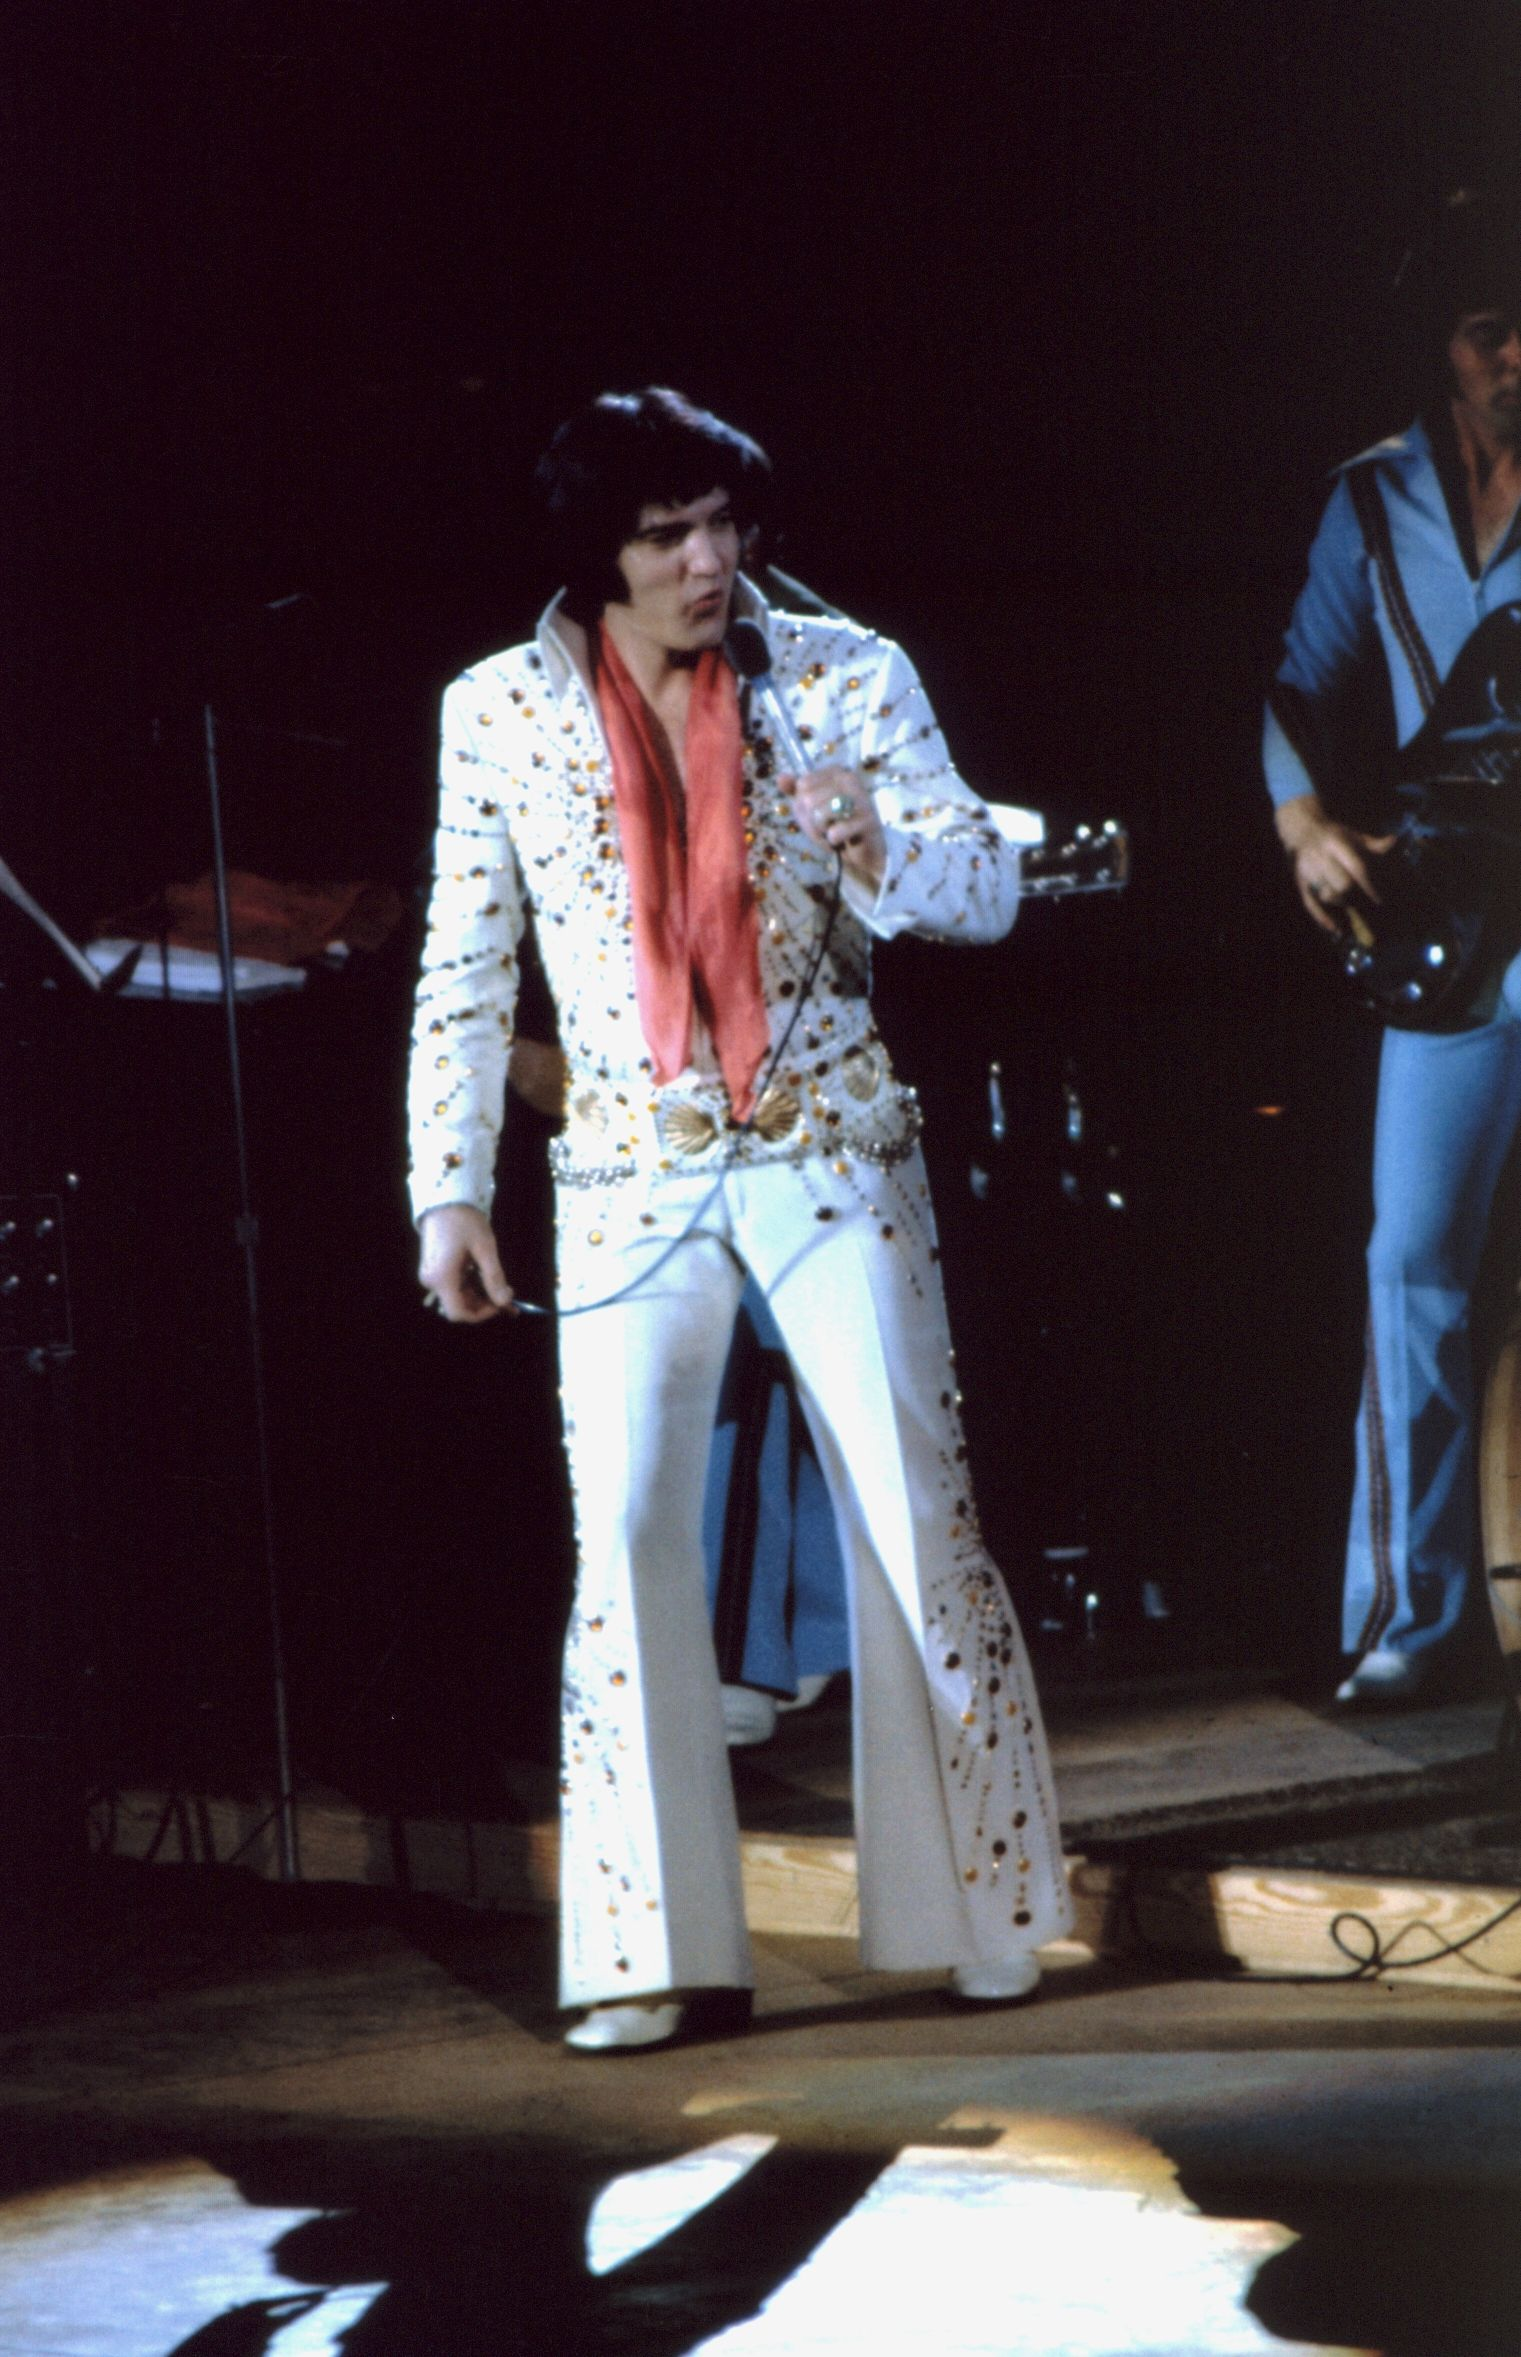 Elvis Presley In Concert Details for 5 March 1974 show in Auburn